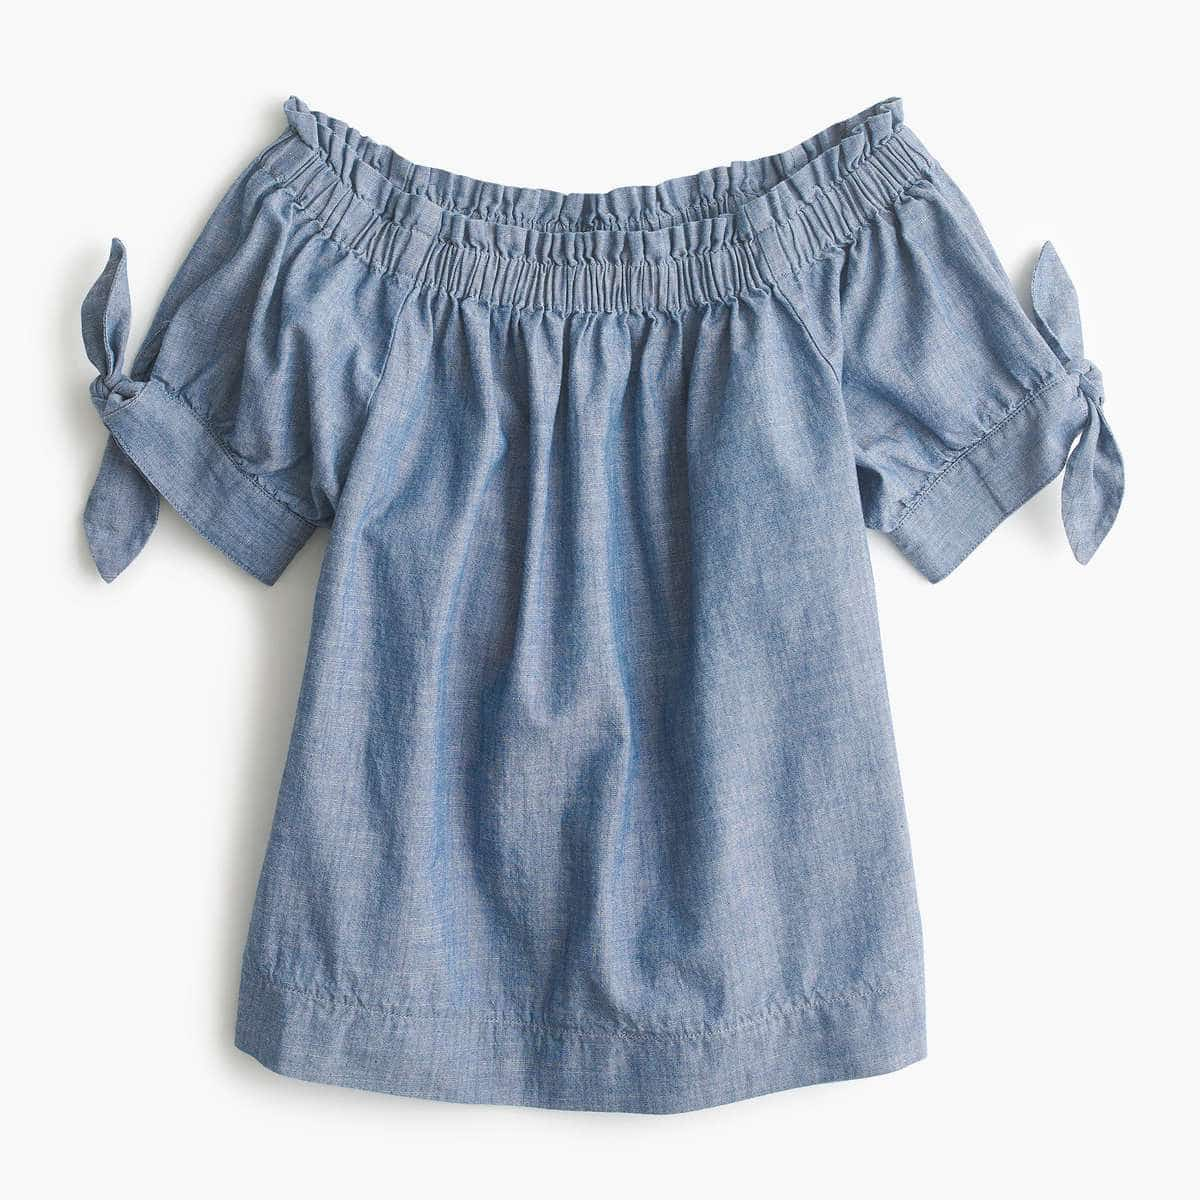 J. Crew Off the Shoulder Chambray Top